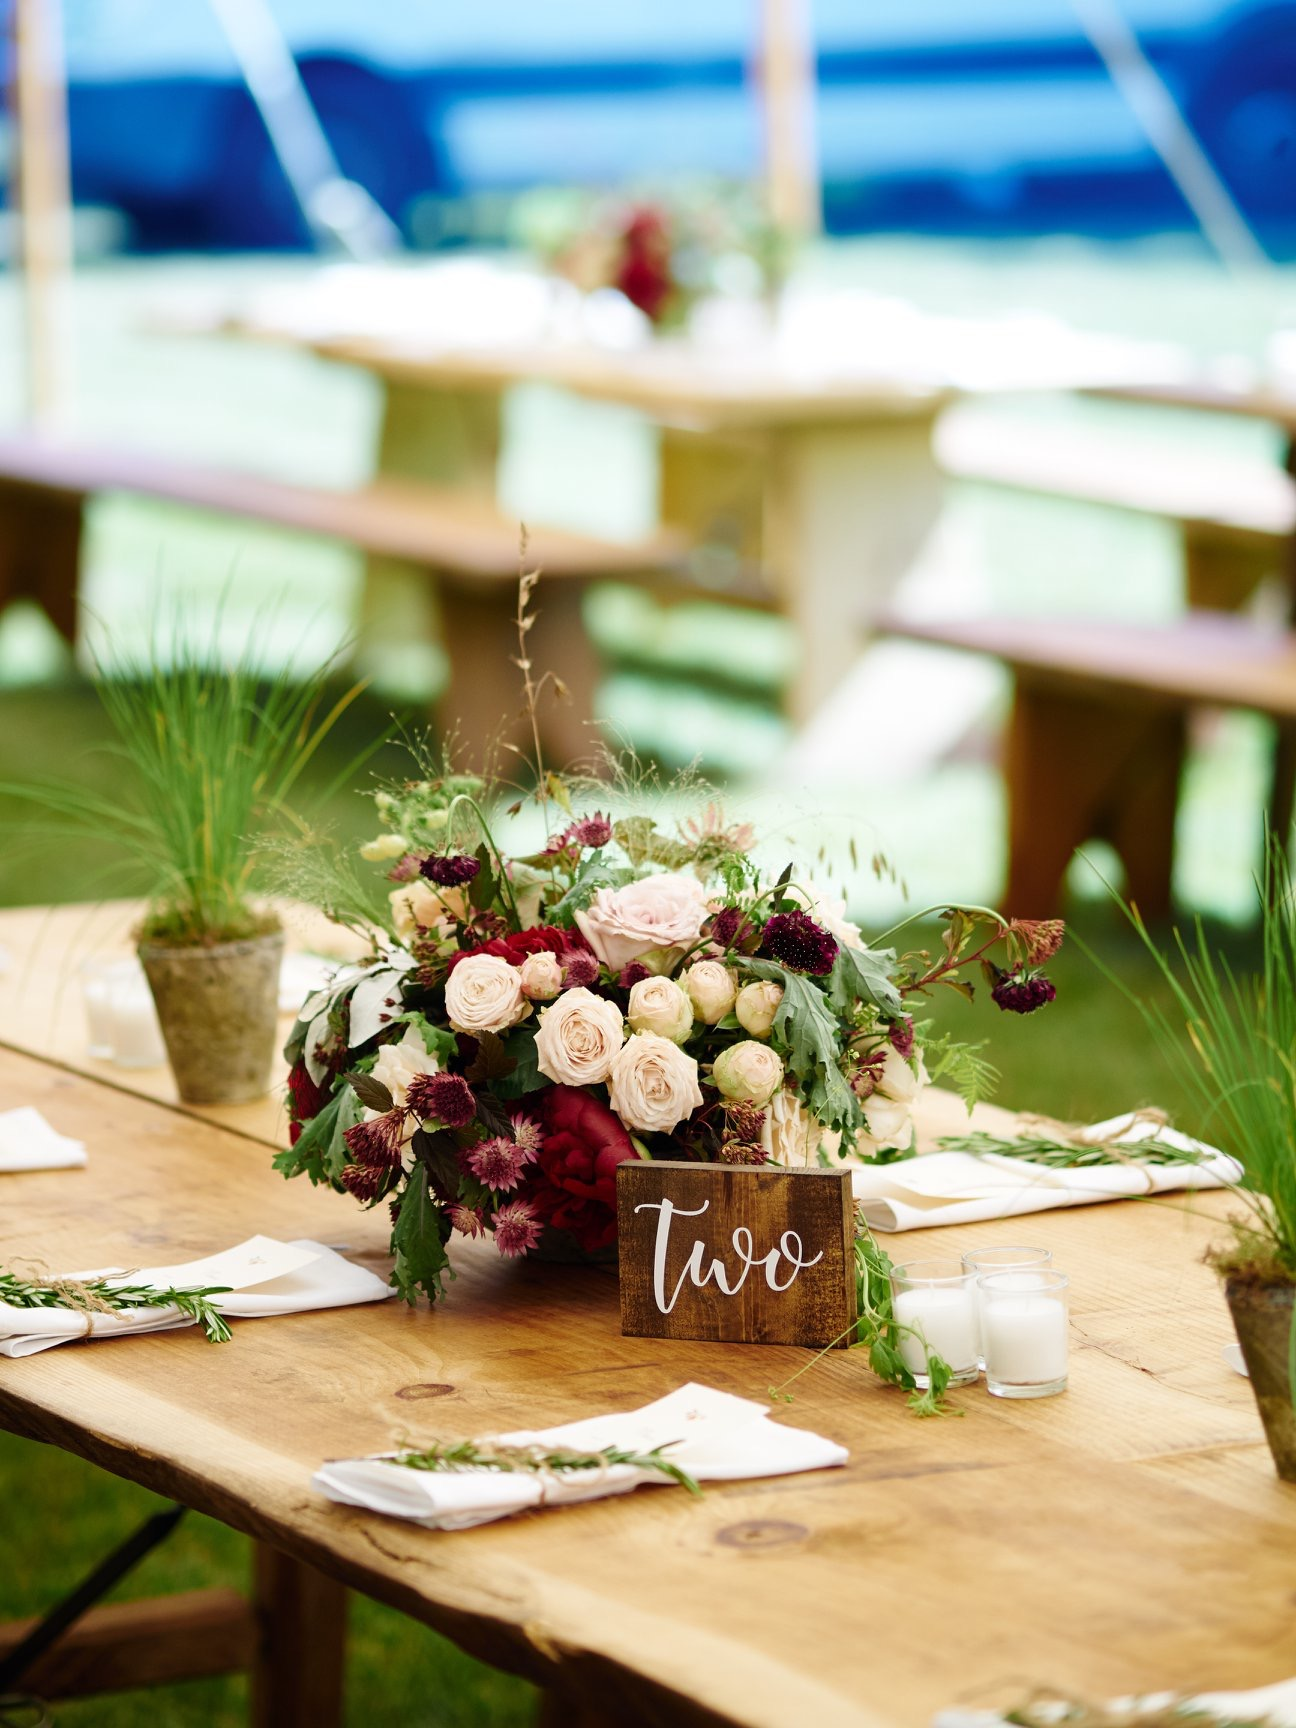 Farm tables and benches with wooden table numbers and centerpieces with plants - Pearl Weddings & Events